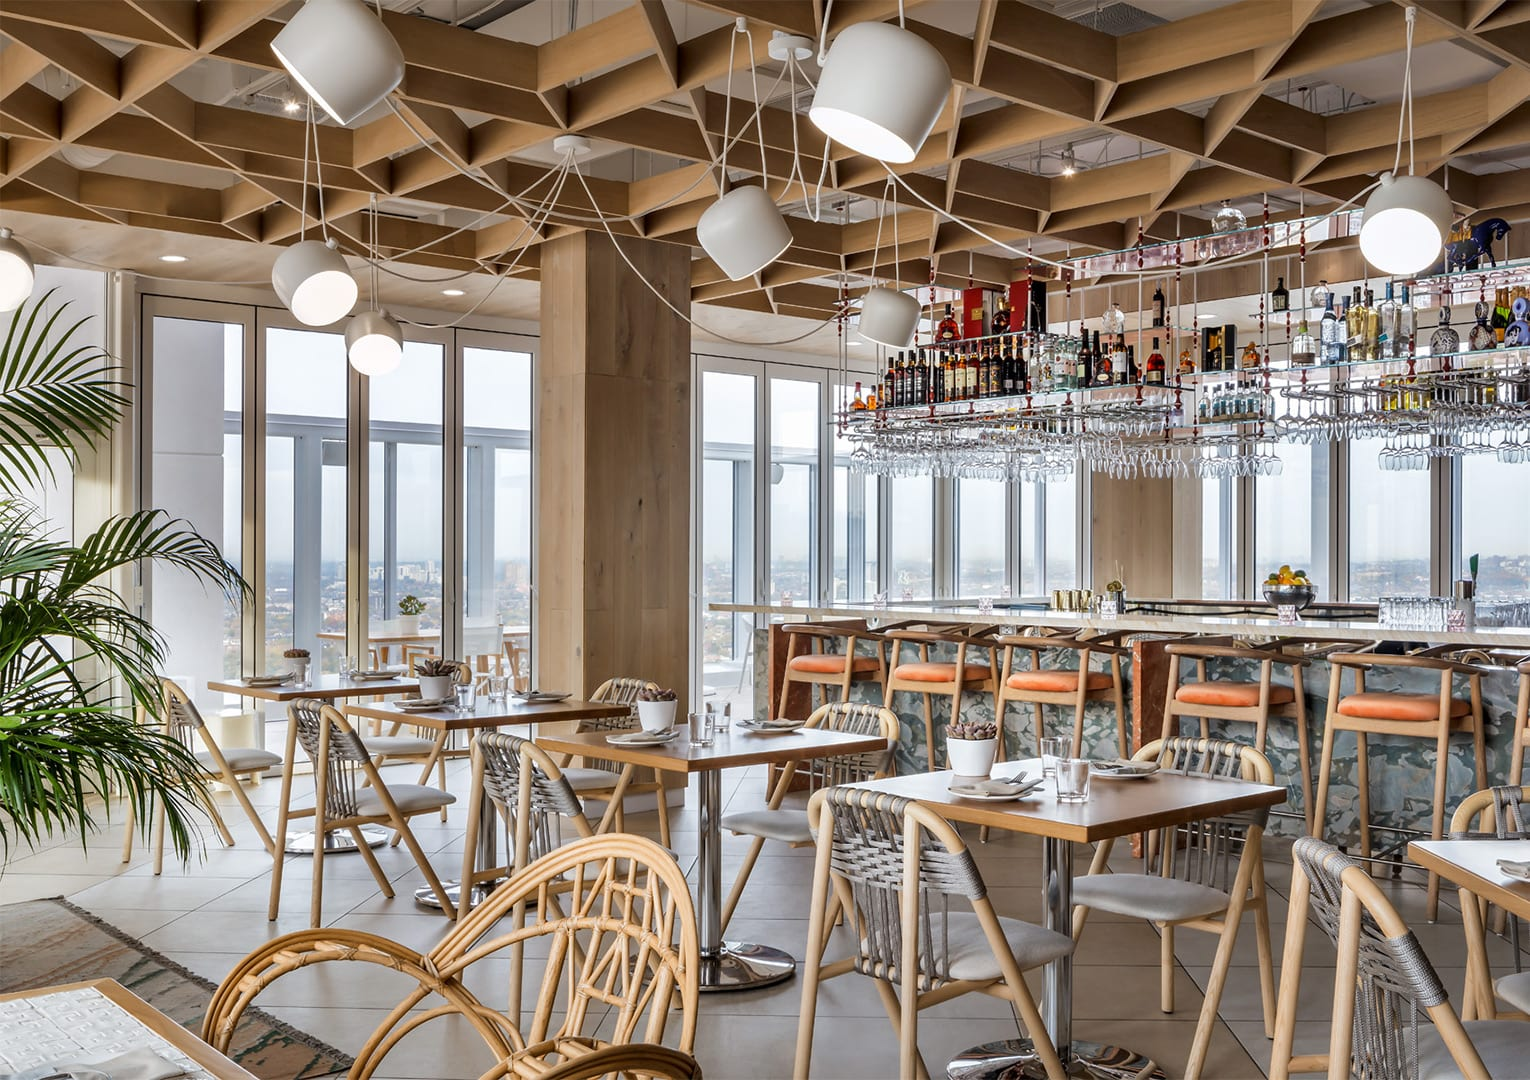 Baja Fresh Breakfast >> KOST-Kōst is a 44th floor rooftop restaurant and bar from hospitality leader ICONINK, featuring ...